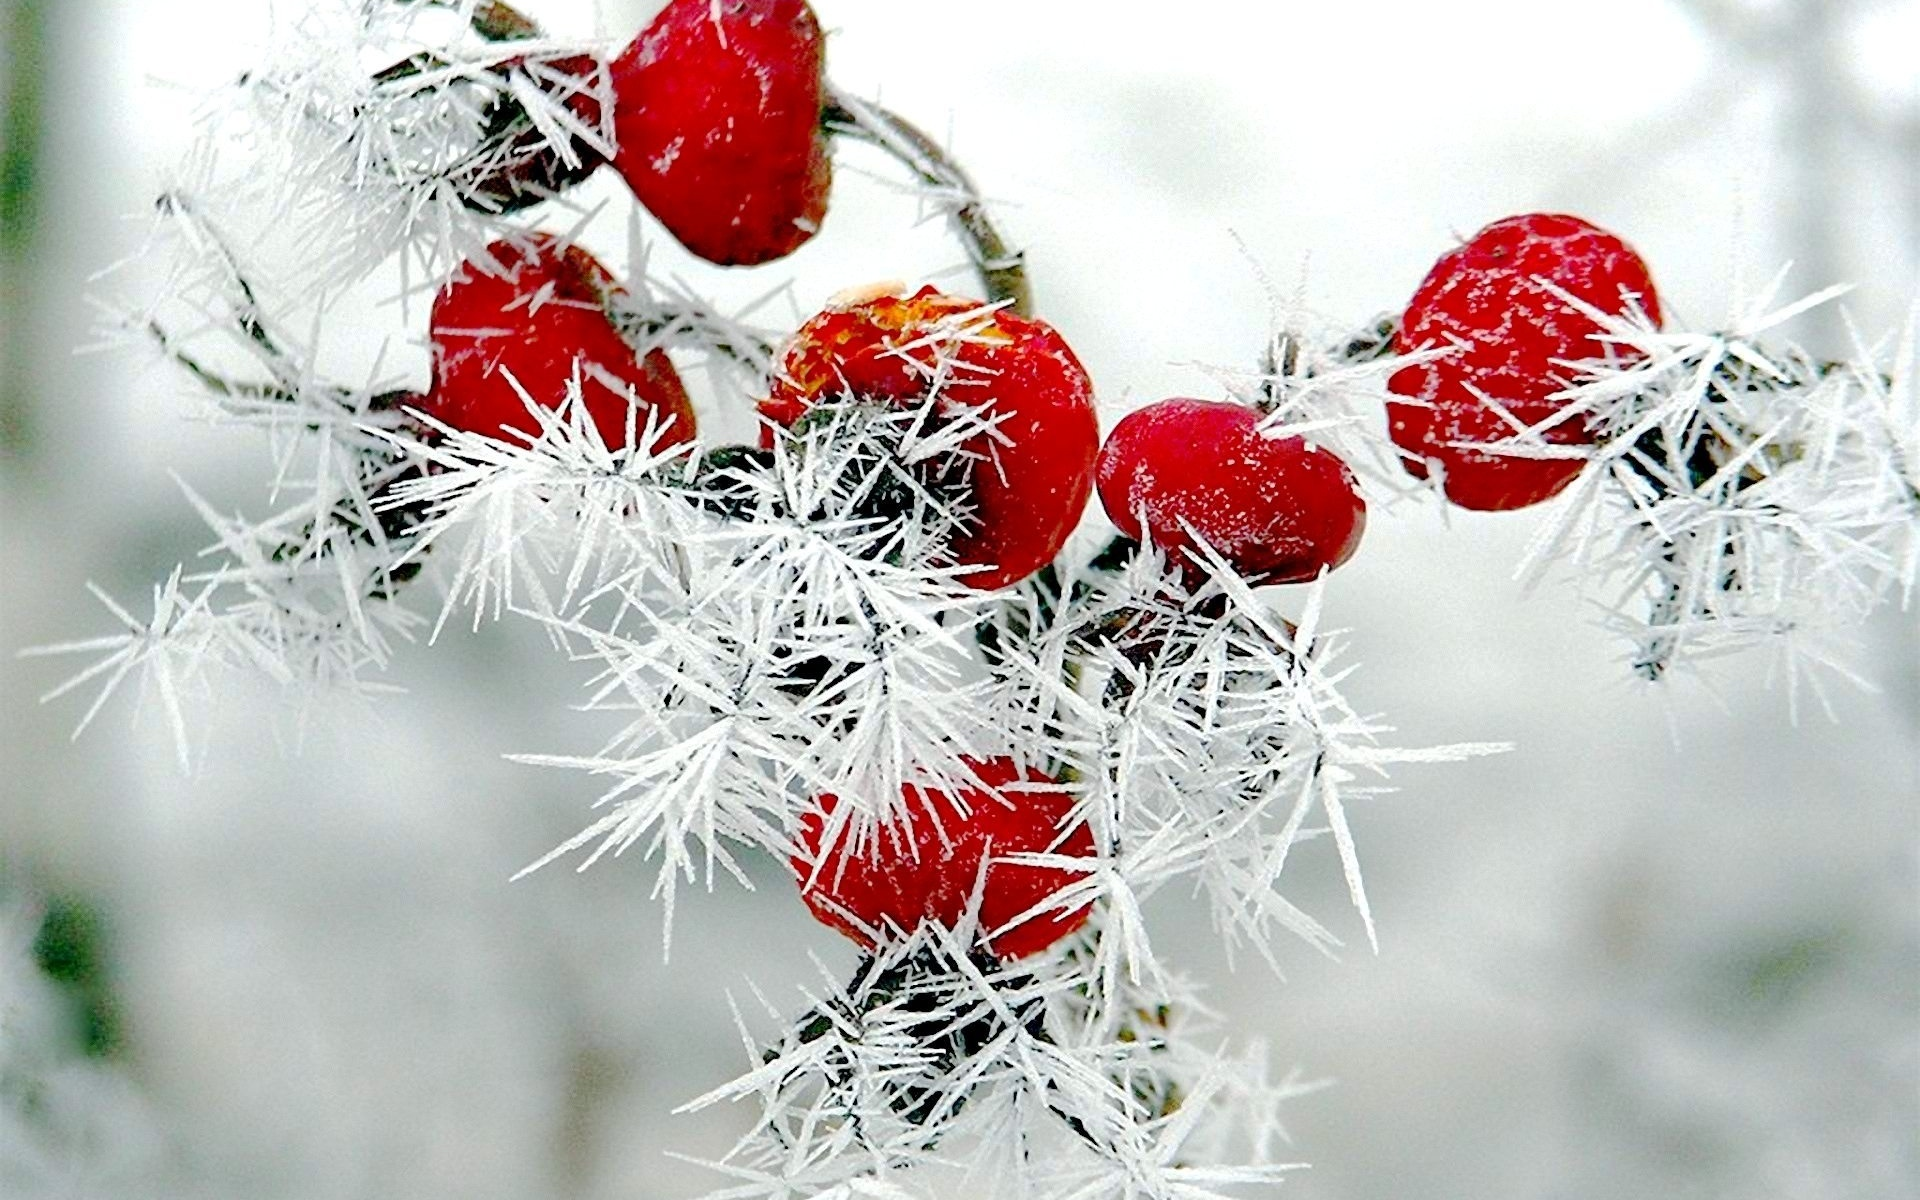 Winter berries wallpaper wallpapersafari - Rose in snow wallpaper ...